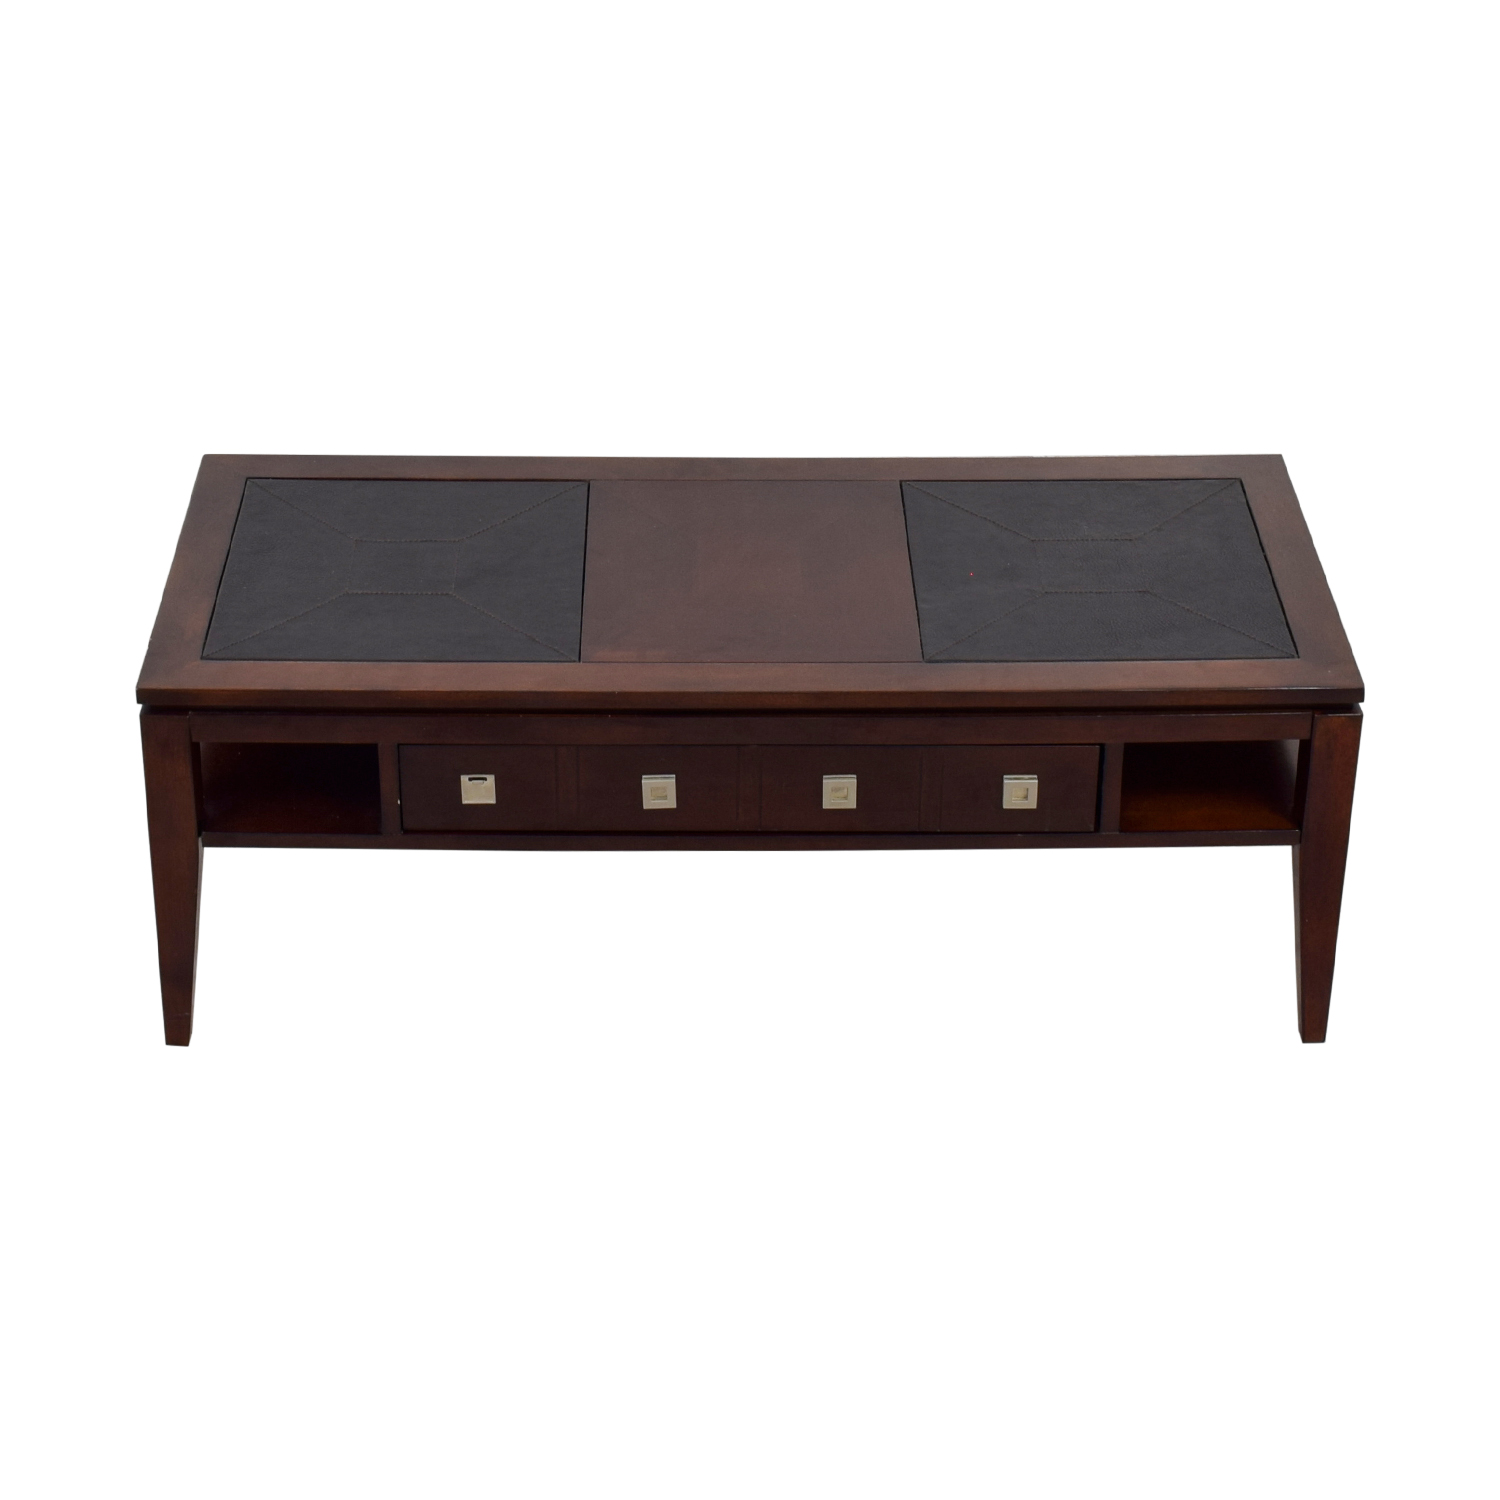 Raymour & Flanigan Raymour & Flanigan Single-Drawer Coffee Table on sale